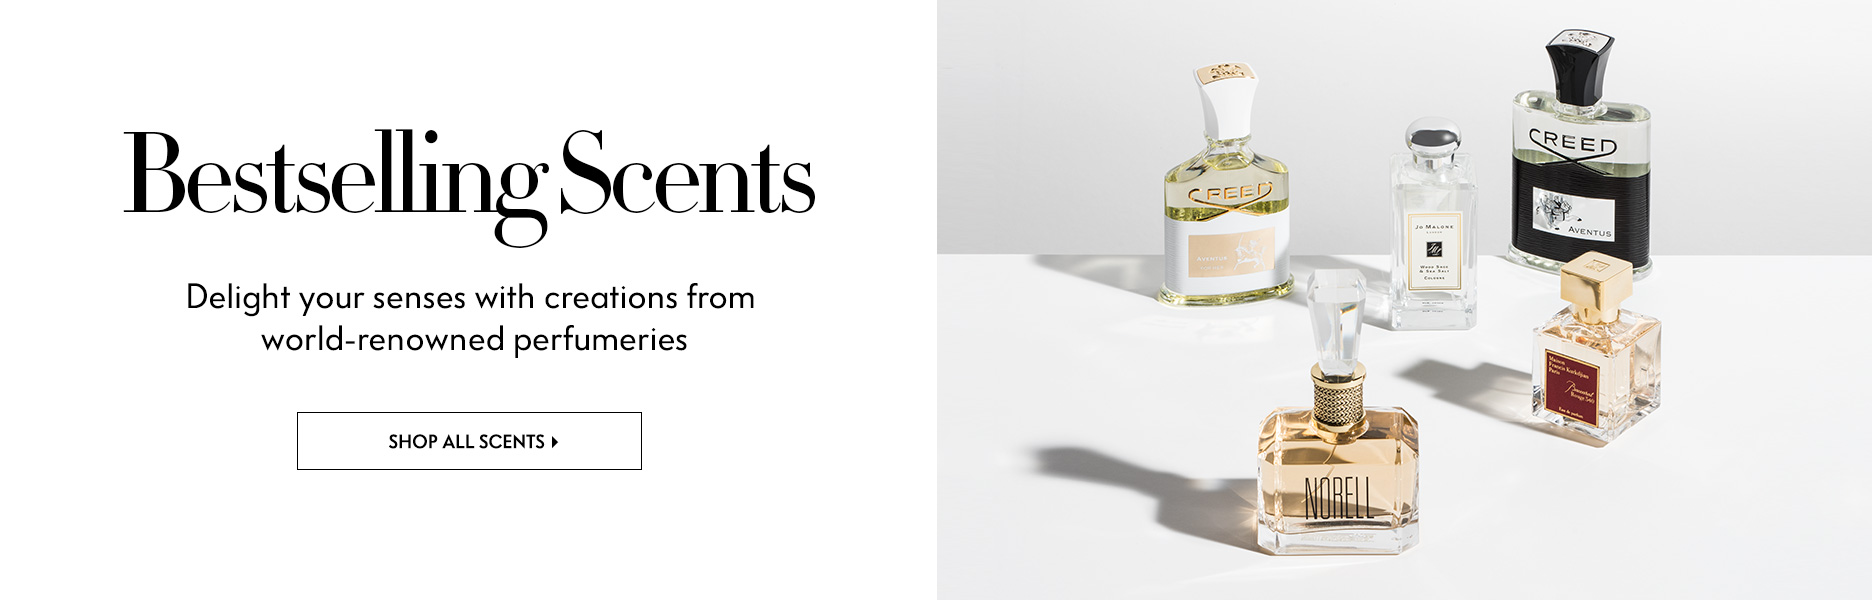 Scents - Delight your senses with creations from world-renowned perfumeries